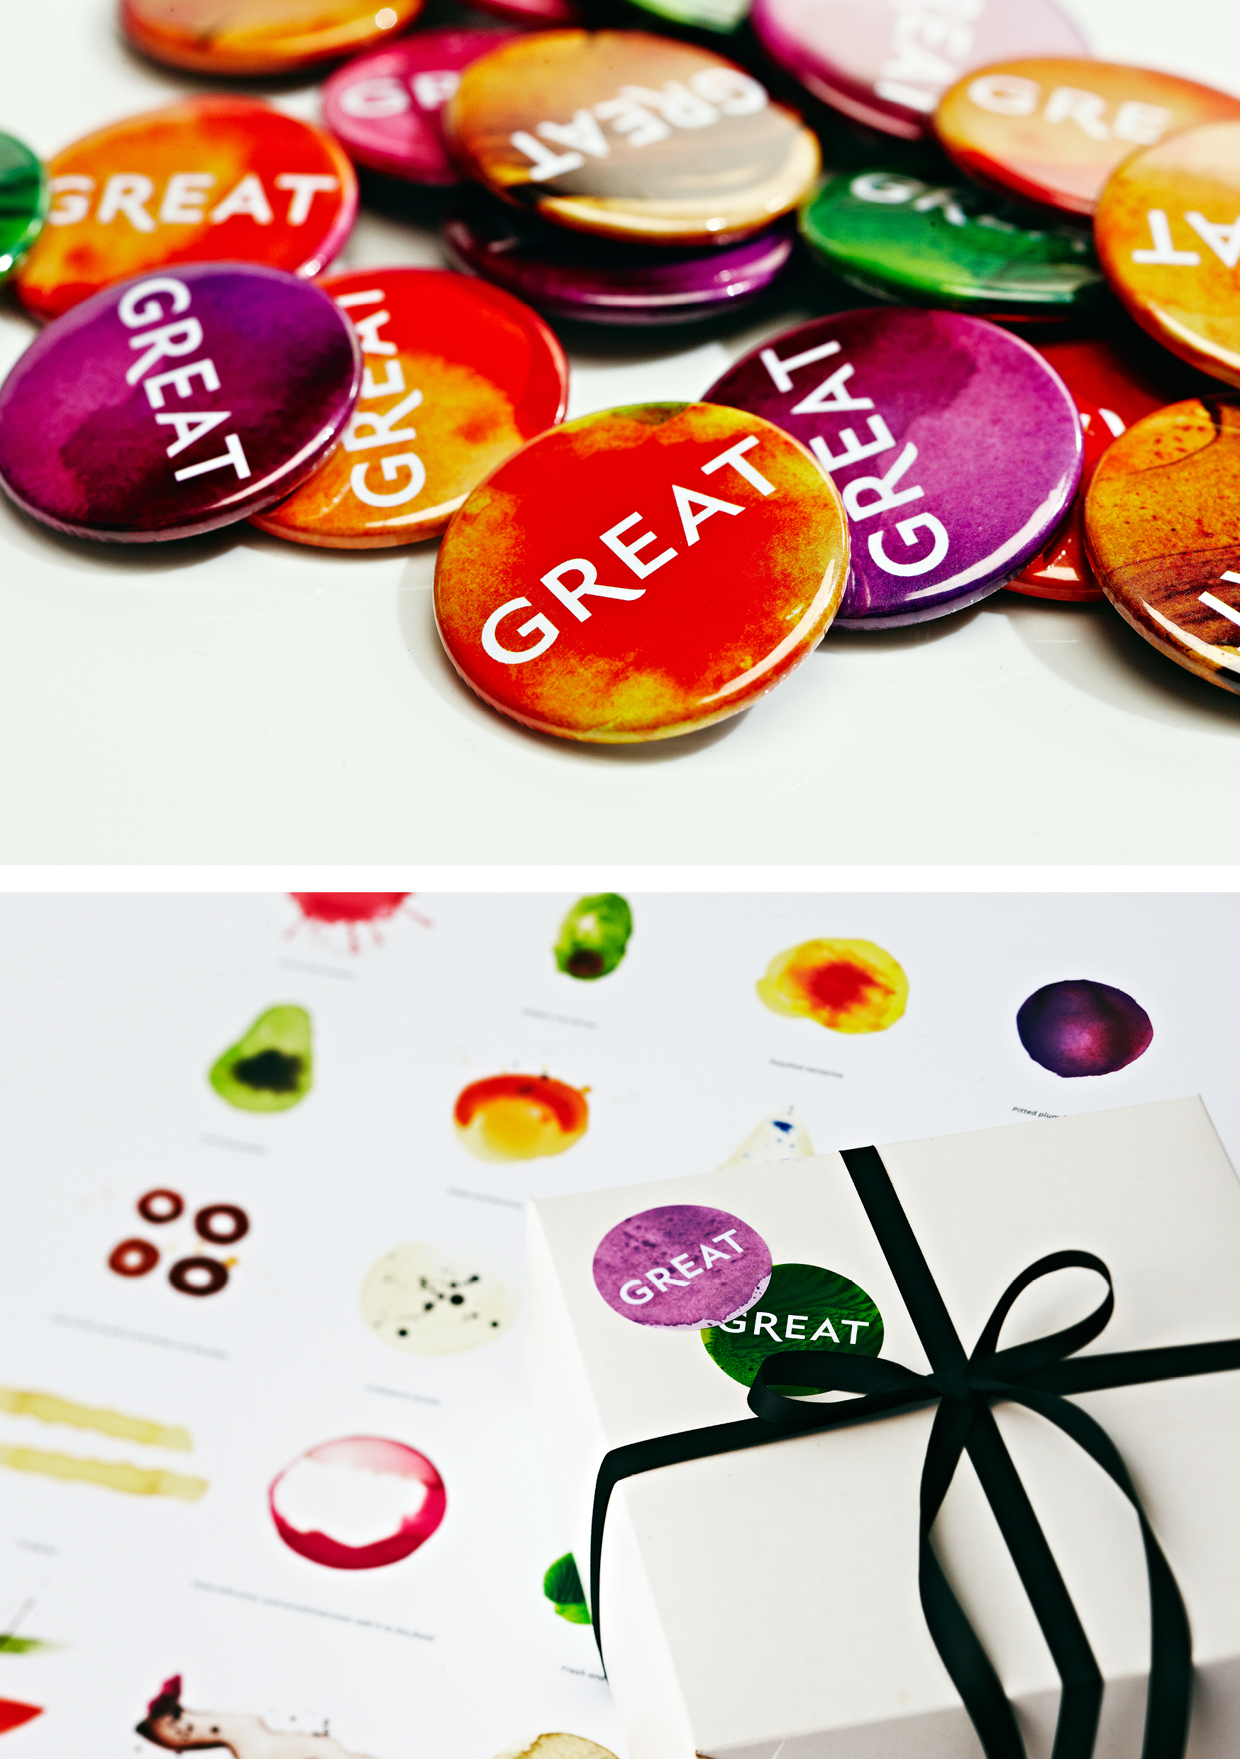 the-great-catering-co-badges-packaging.jpg